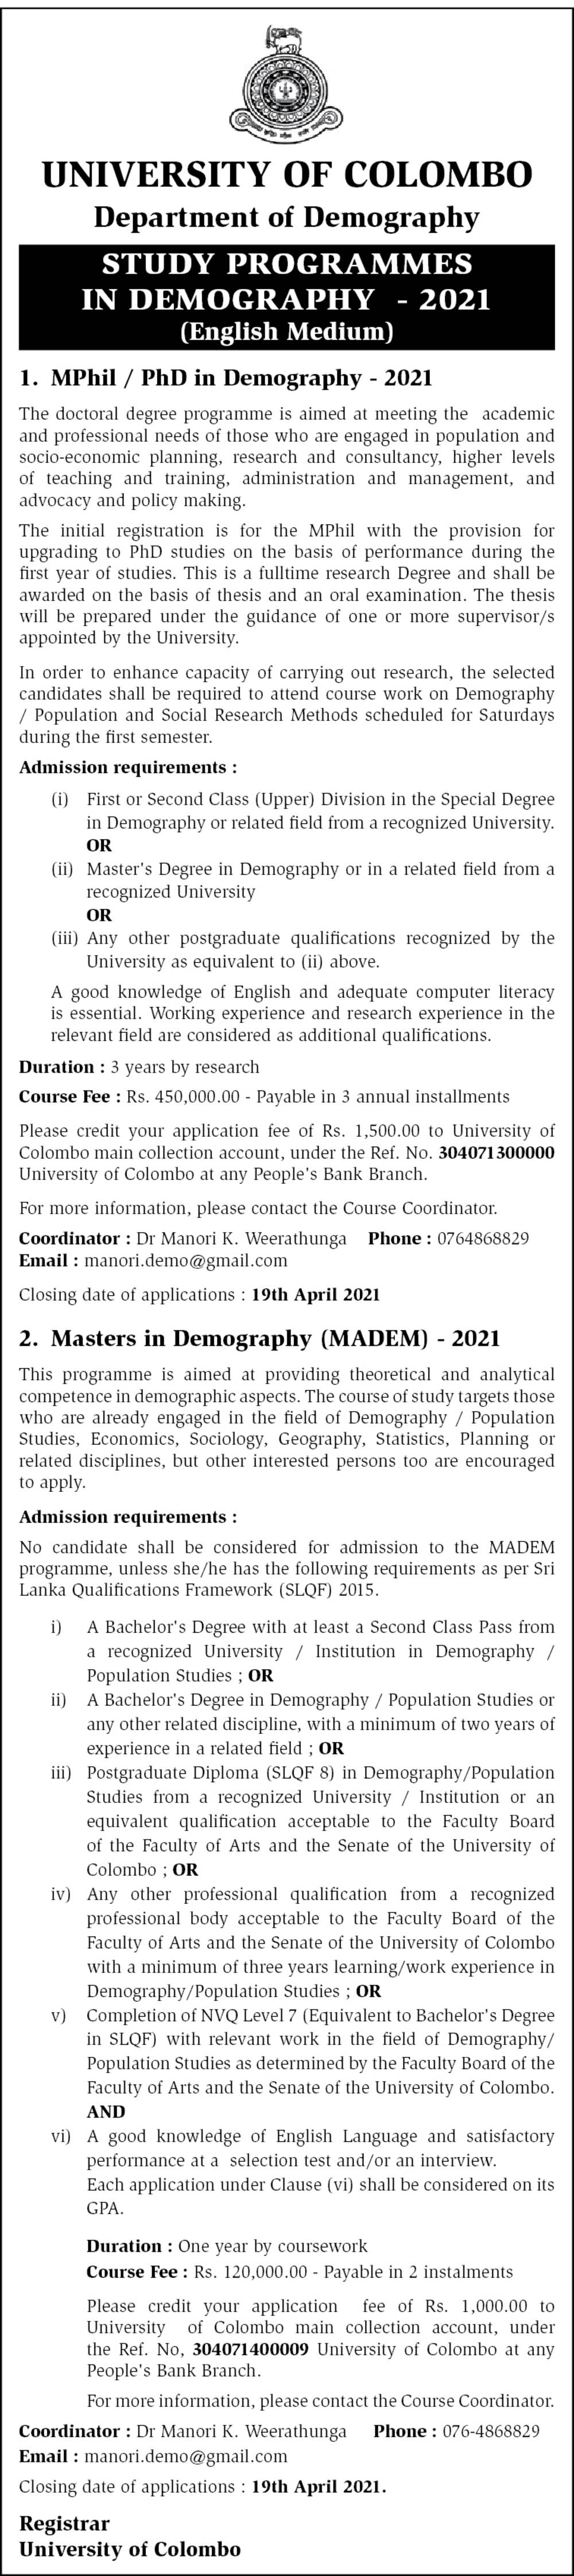 MPhil/PhD in Demography, Master in Demography - Department of Demography - University of Colombo